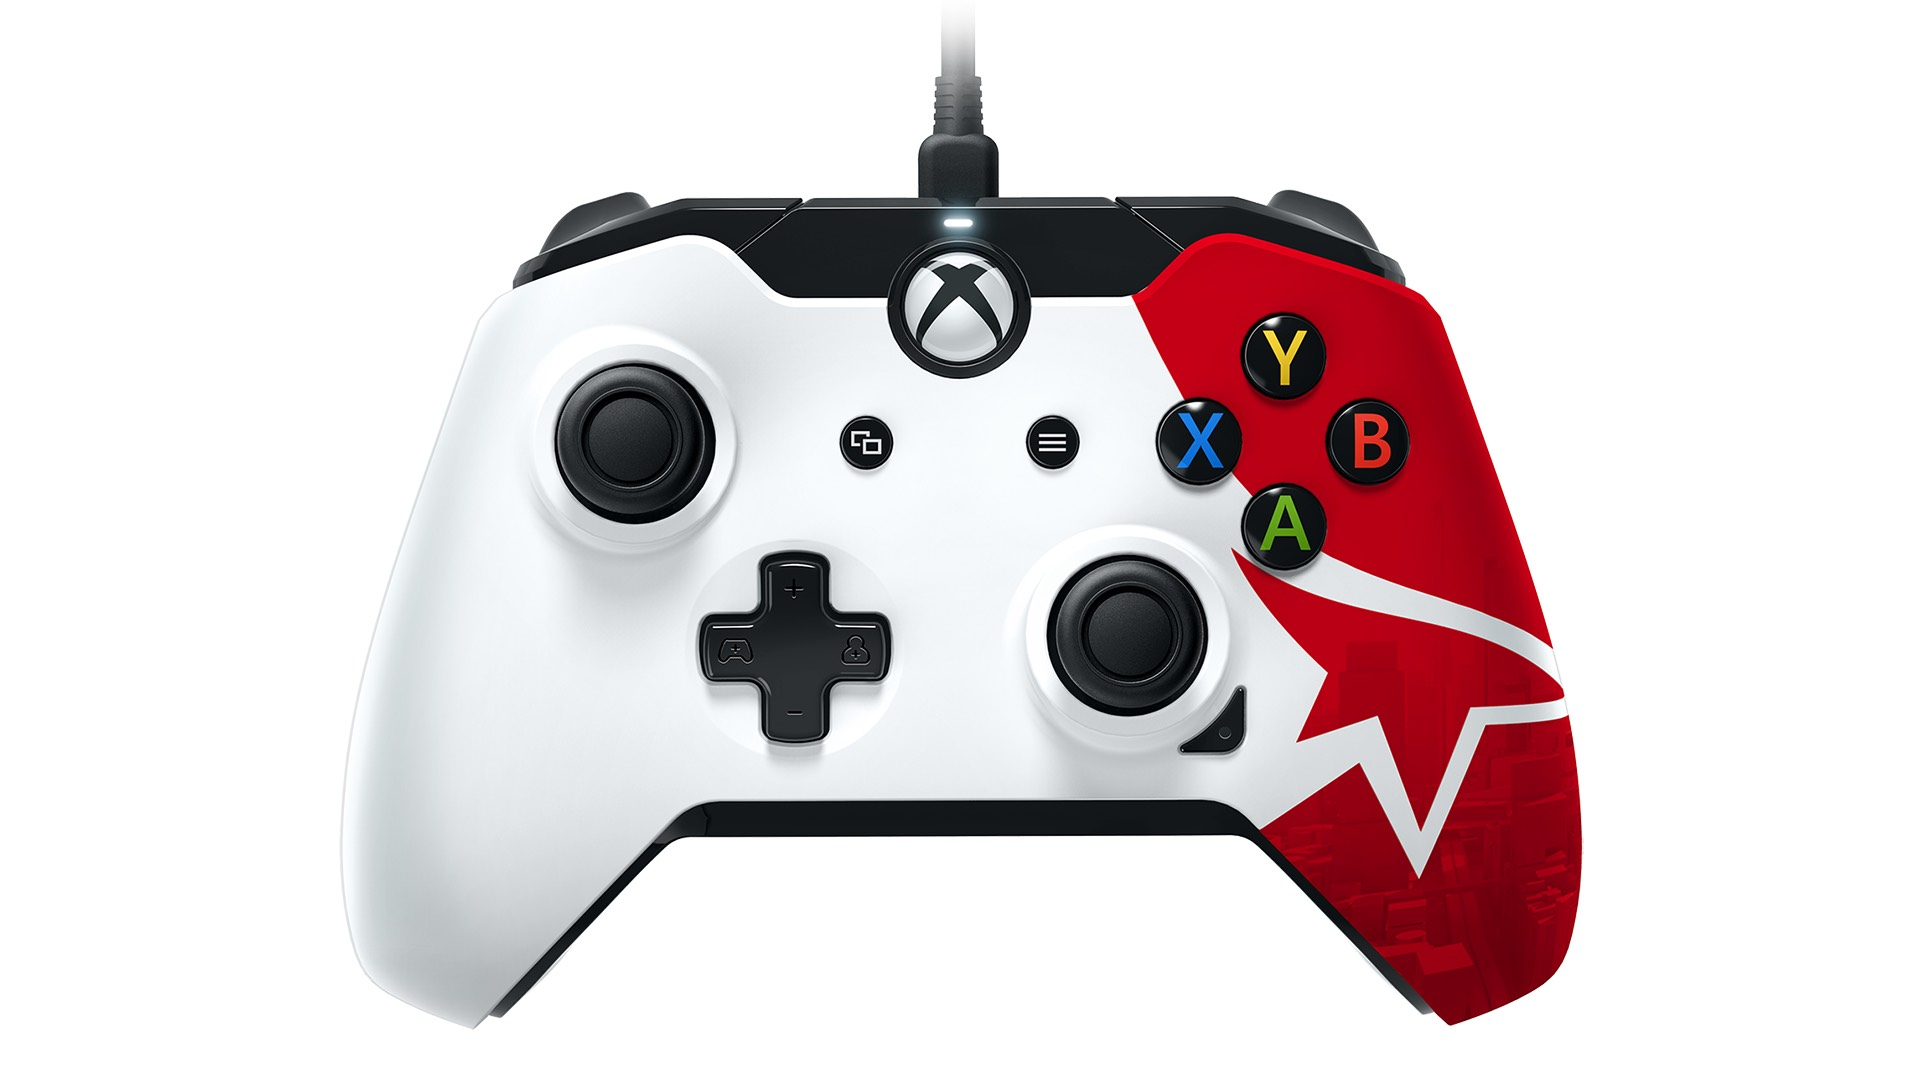 Performance Designed Products To Release Mirrors Edge Catalyst Mission Control Wire Diagram A Limited Edition Officially Licensed Controller For Xbox One Showcasing Art From Is On Its Way